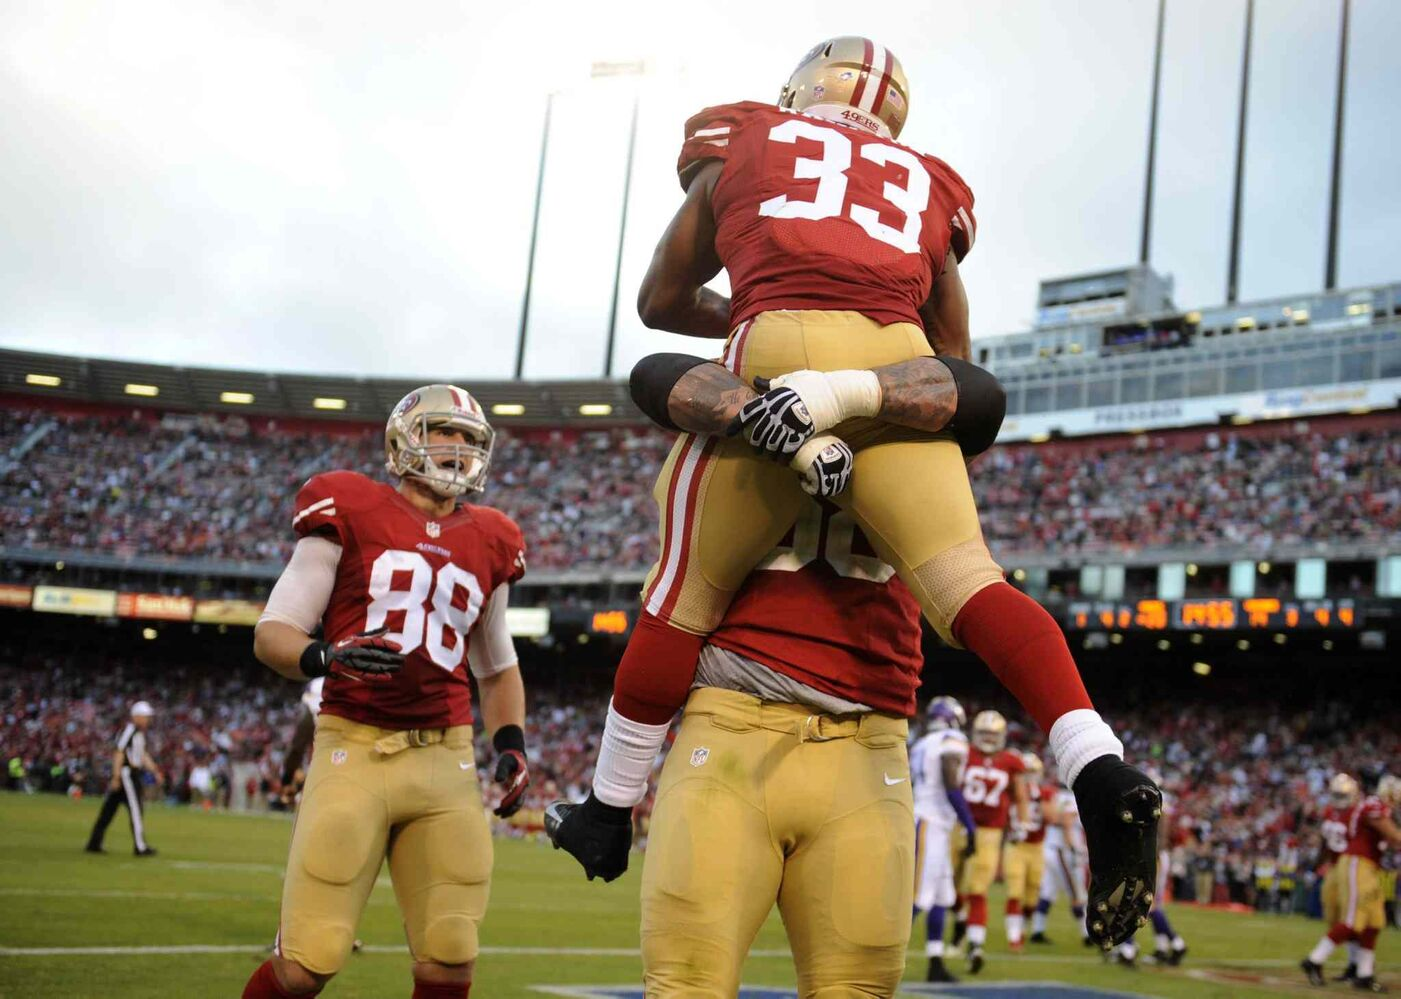 San Francisco 49ers' Jewel Hampton (33) celebrates his fourth-quarter touchdown against the Minnesota Vikings during a preseason game at Candlestick Park in August 2013. (Susan Tripp Pollard / Contra Costa Times / MCT files)